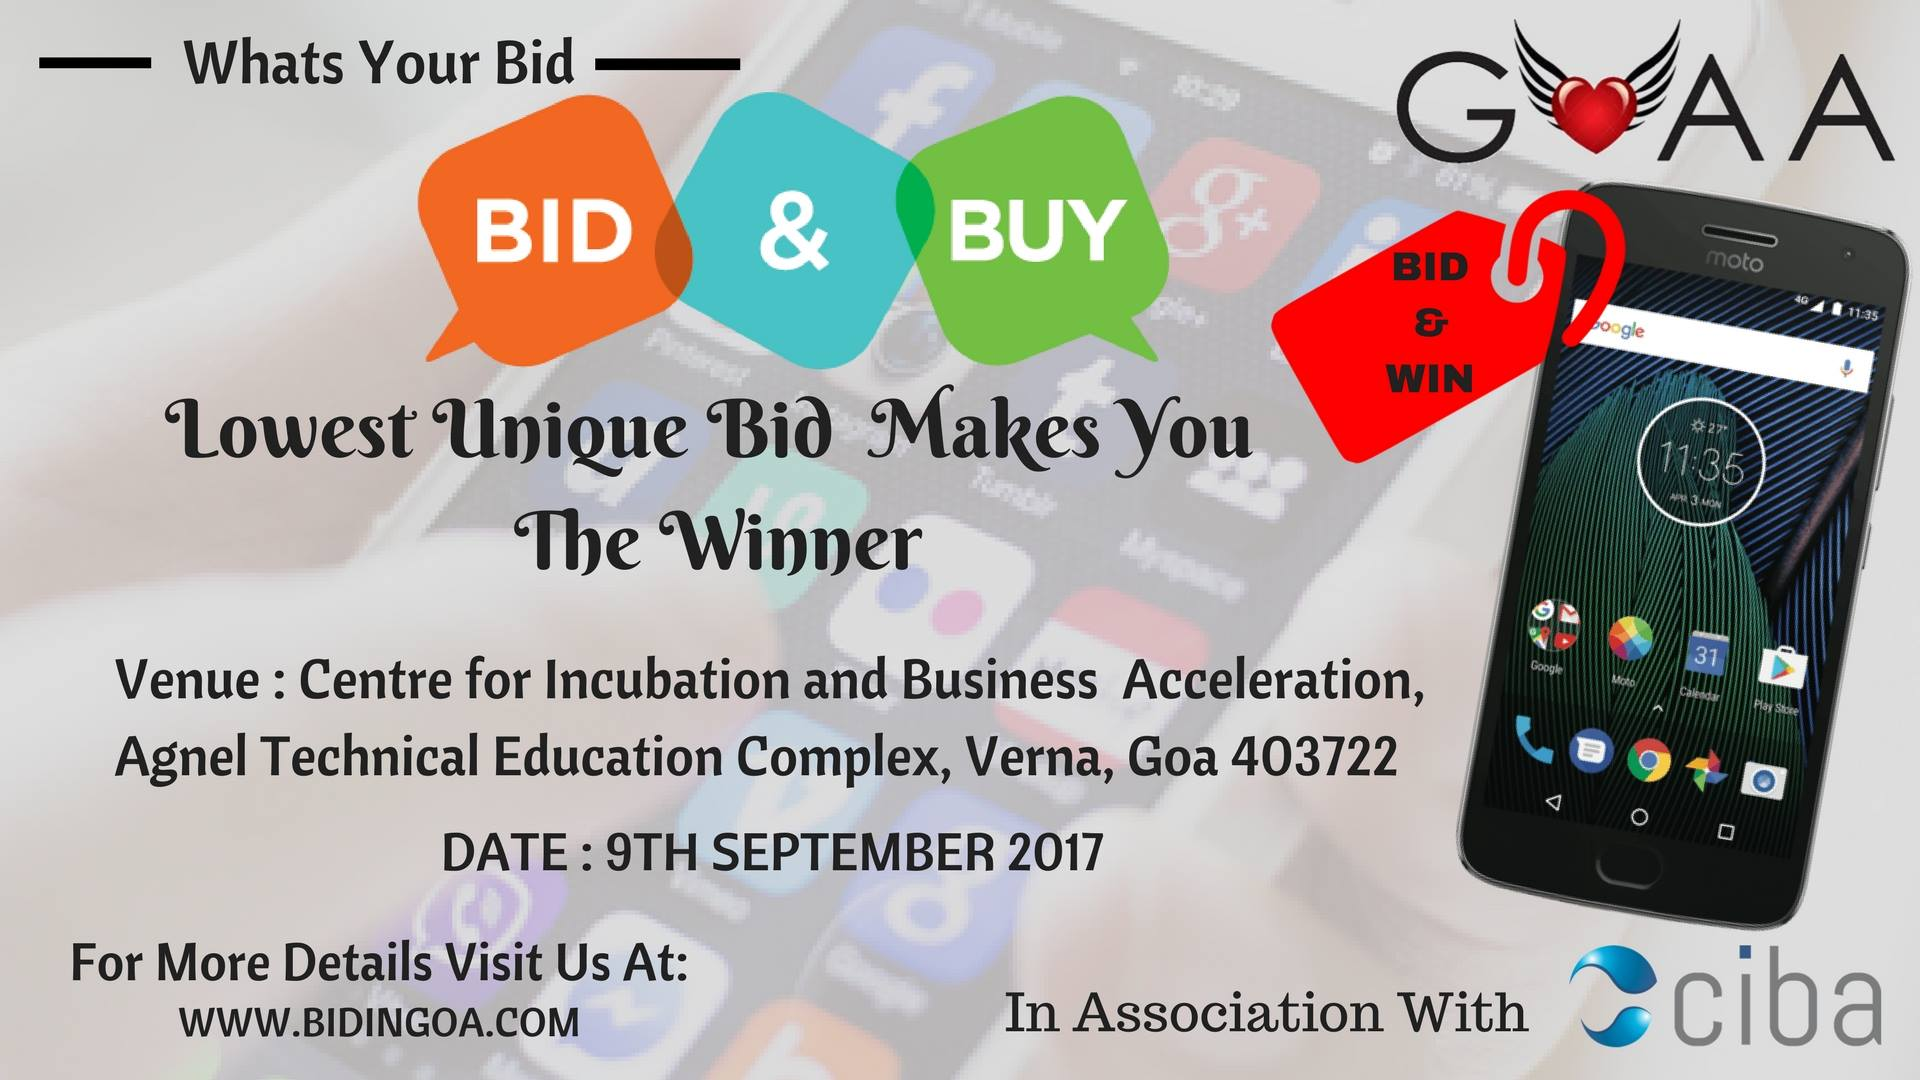 CIBA - BID IN GOA